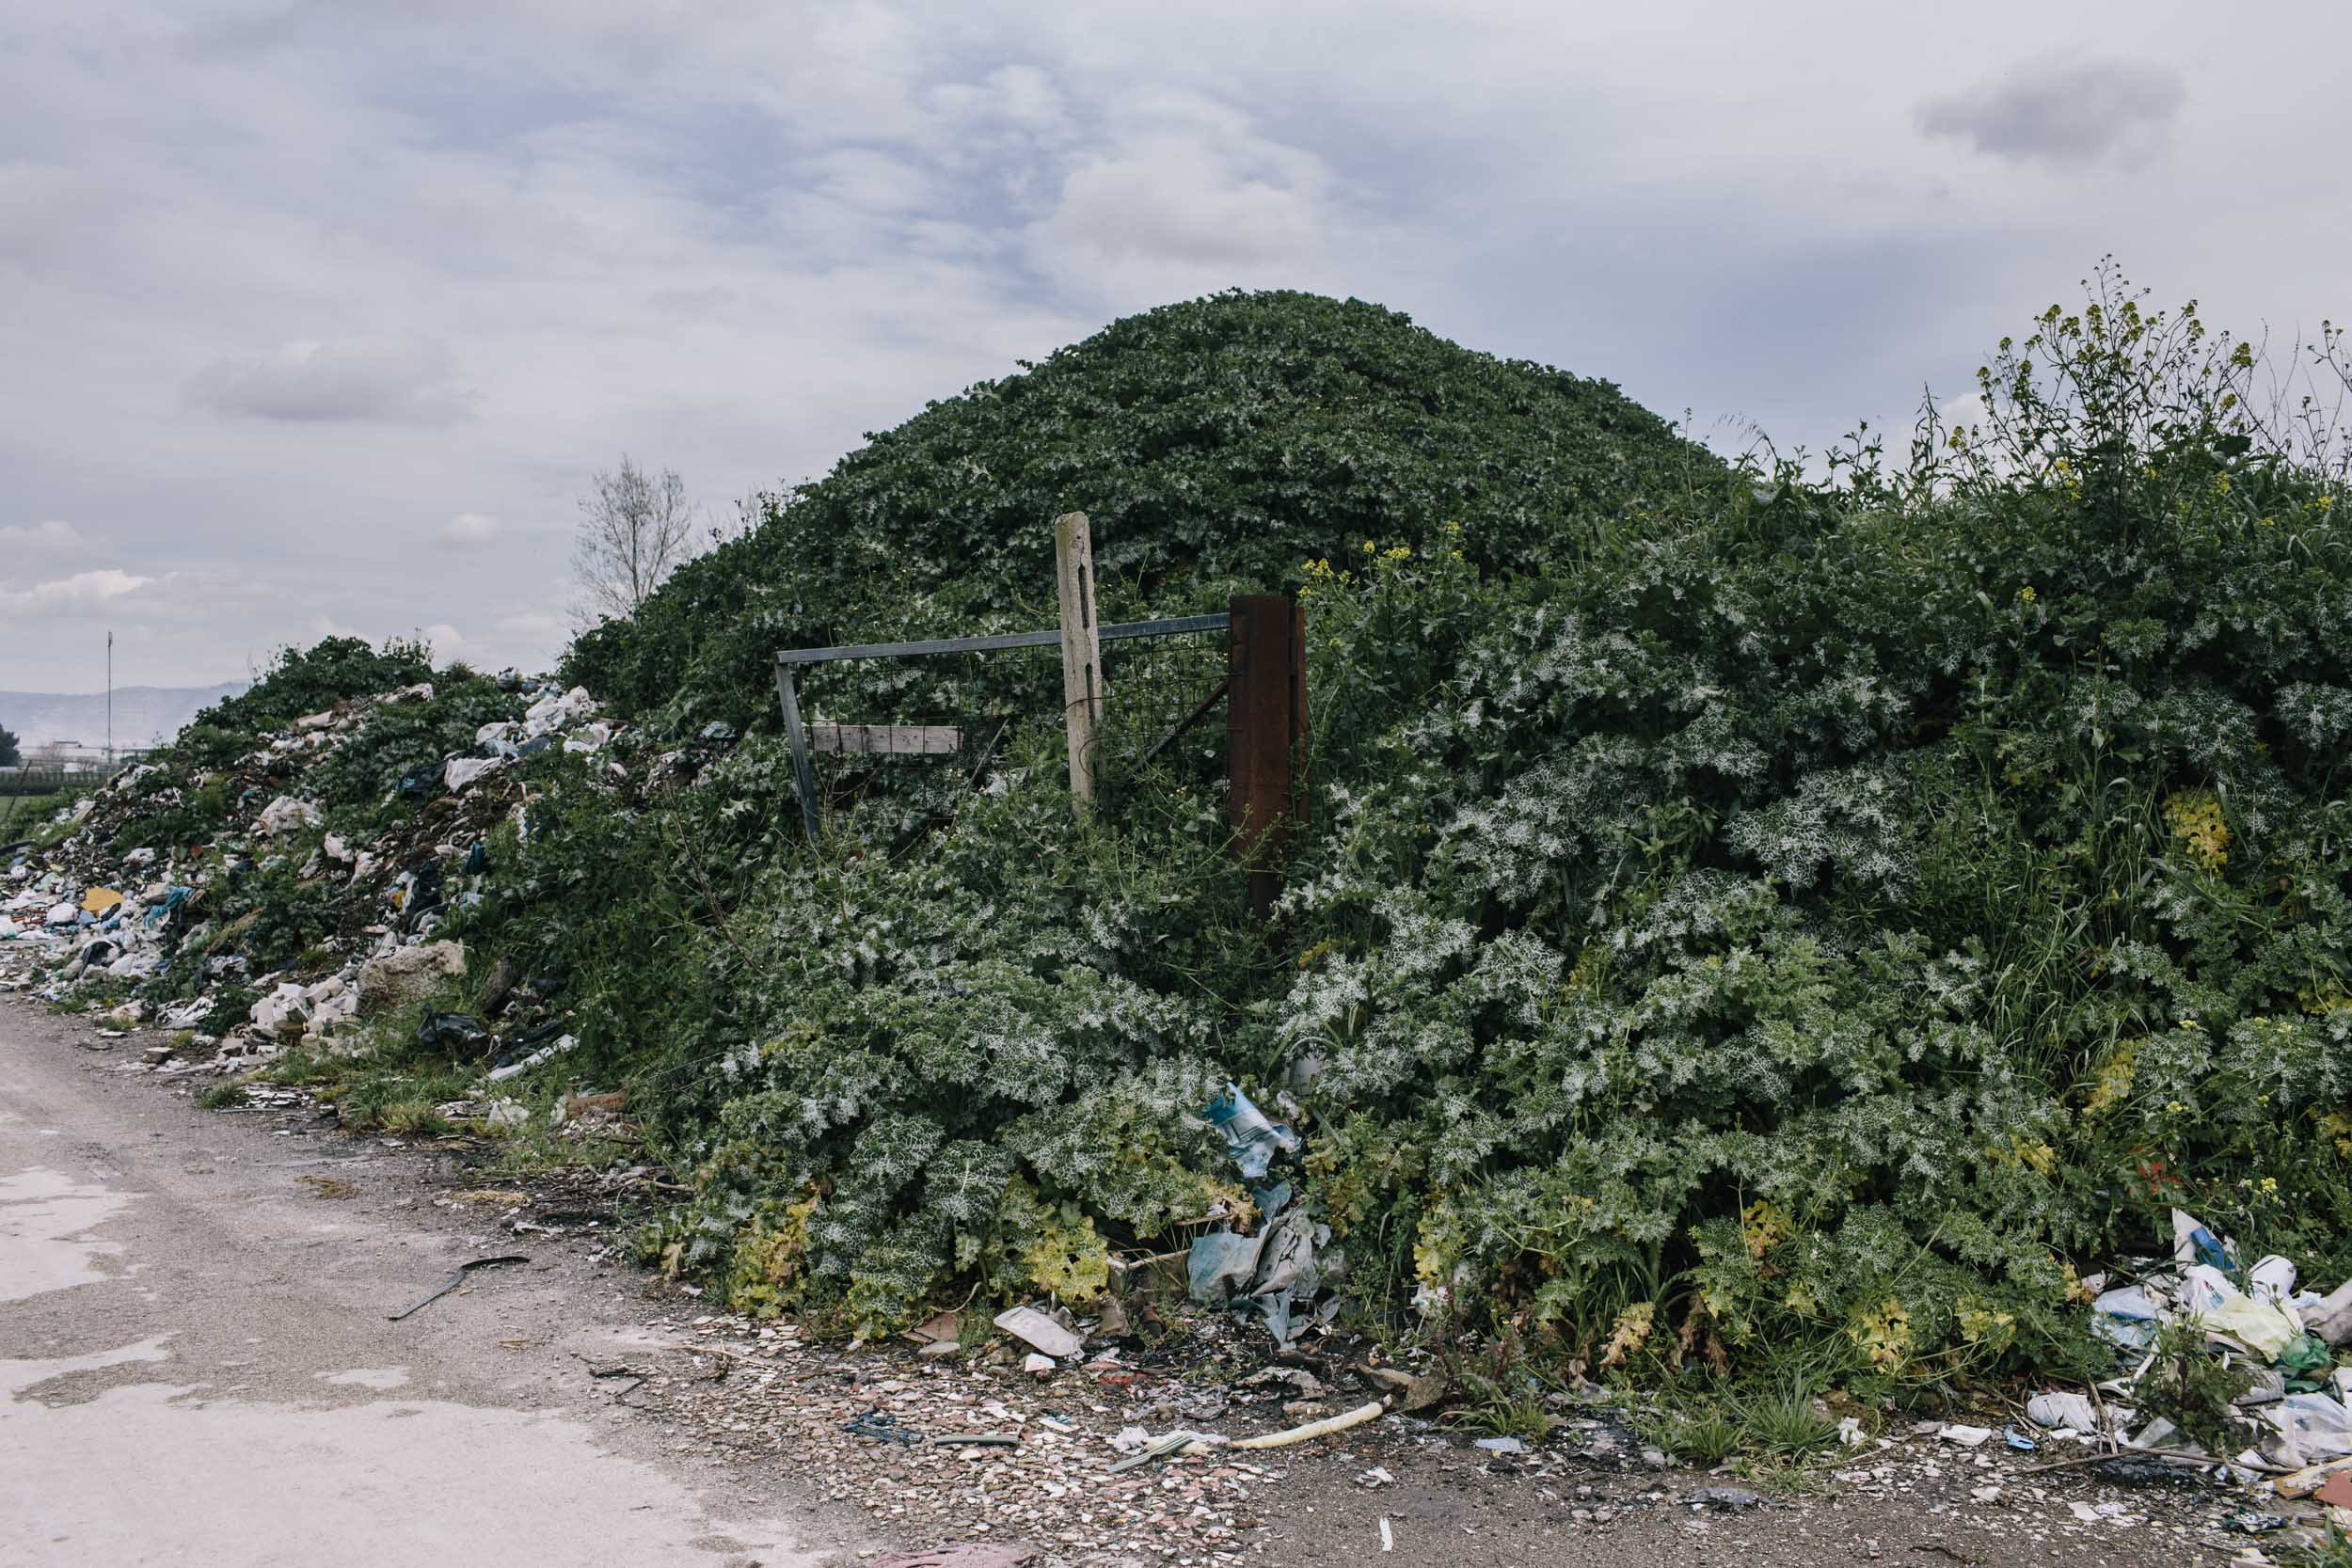 A mound of toxic materials covered by vegetation